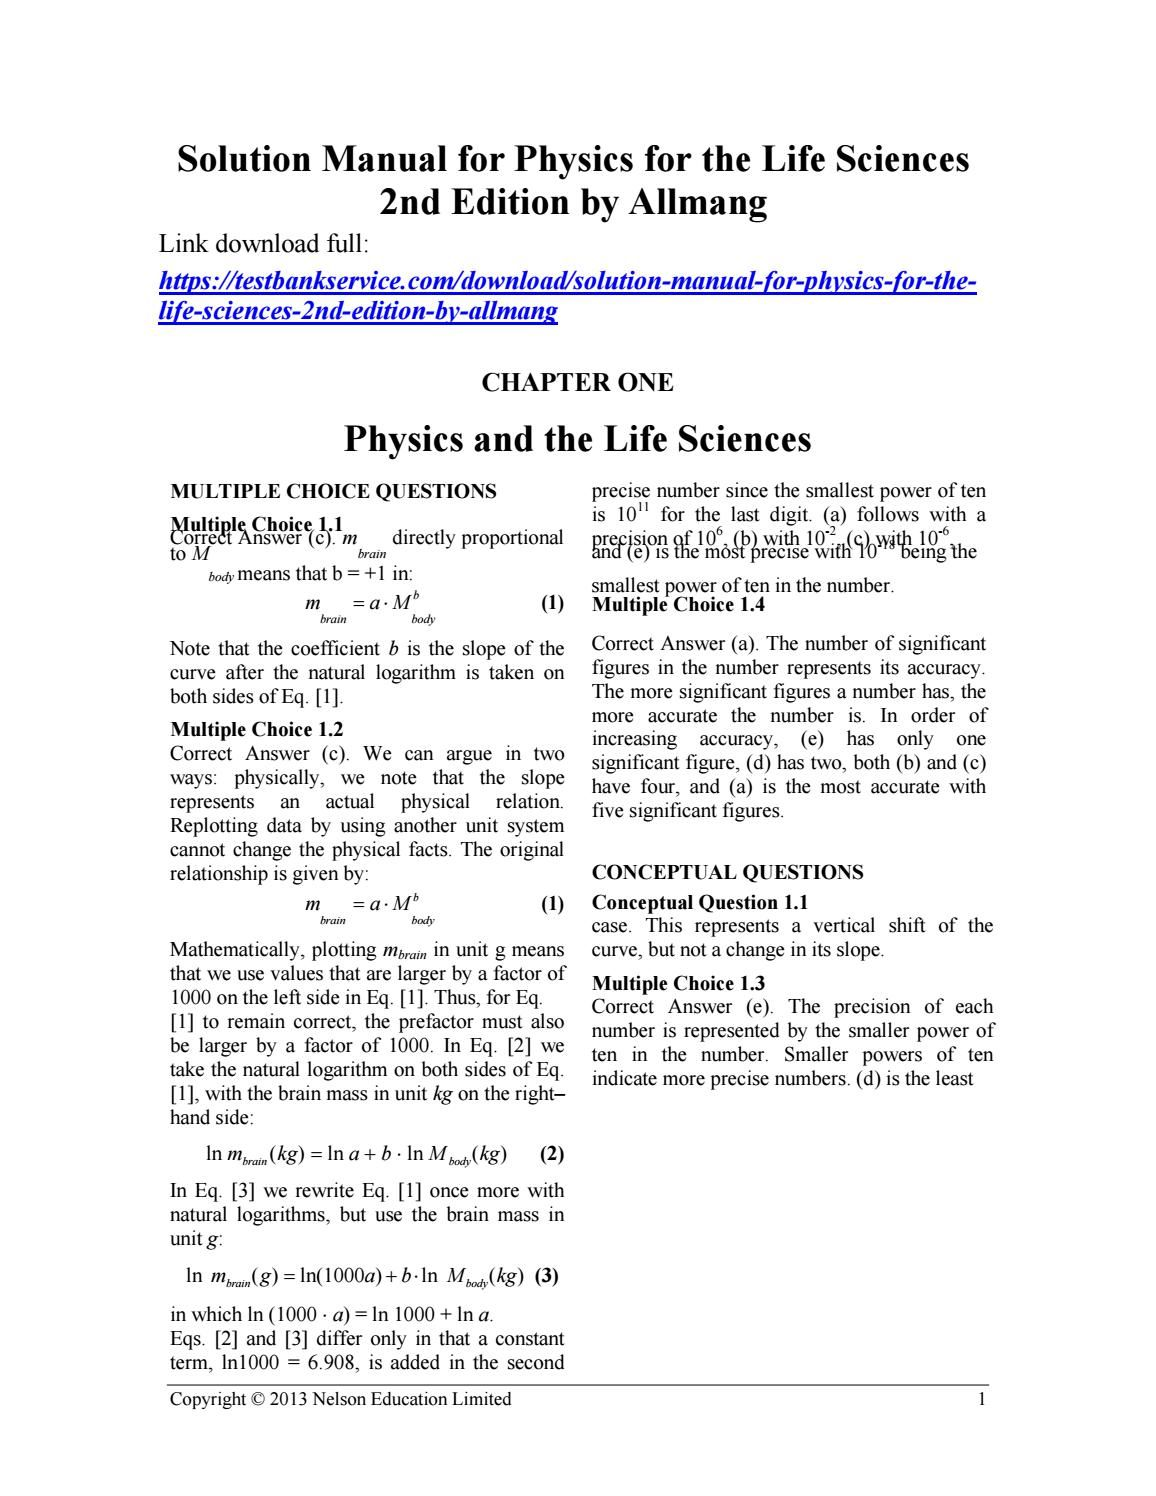 Solution Manual For Physics For The Life Sciences 2nd Edition By Allmang Life Science Physics Science